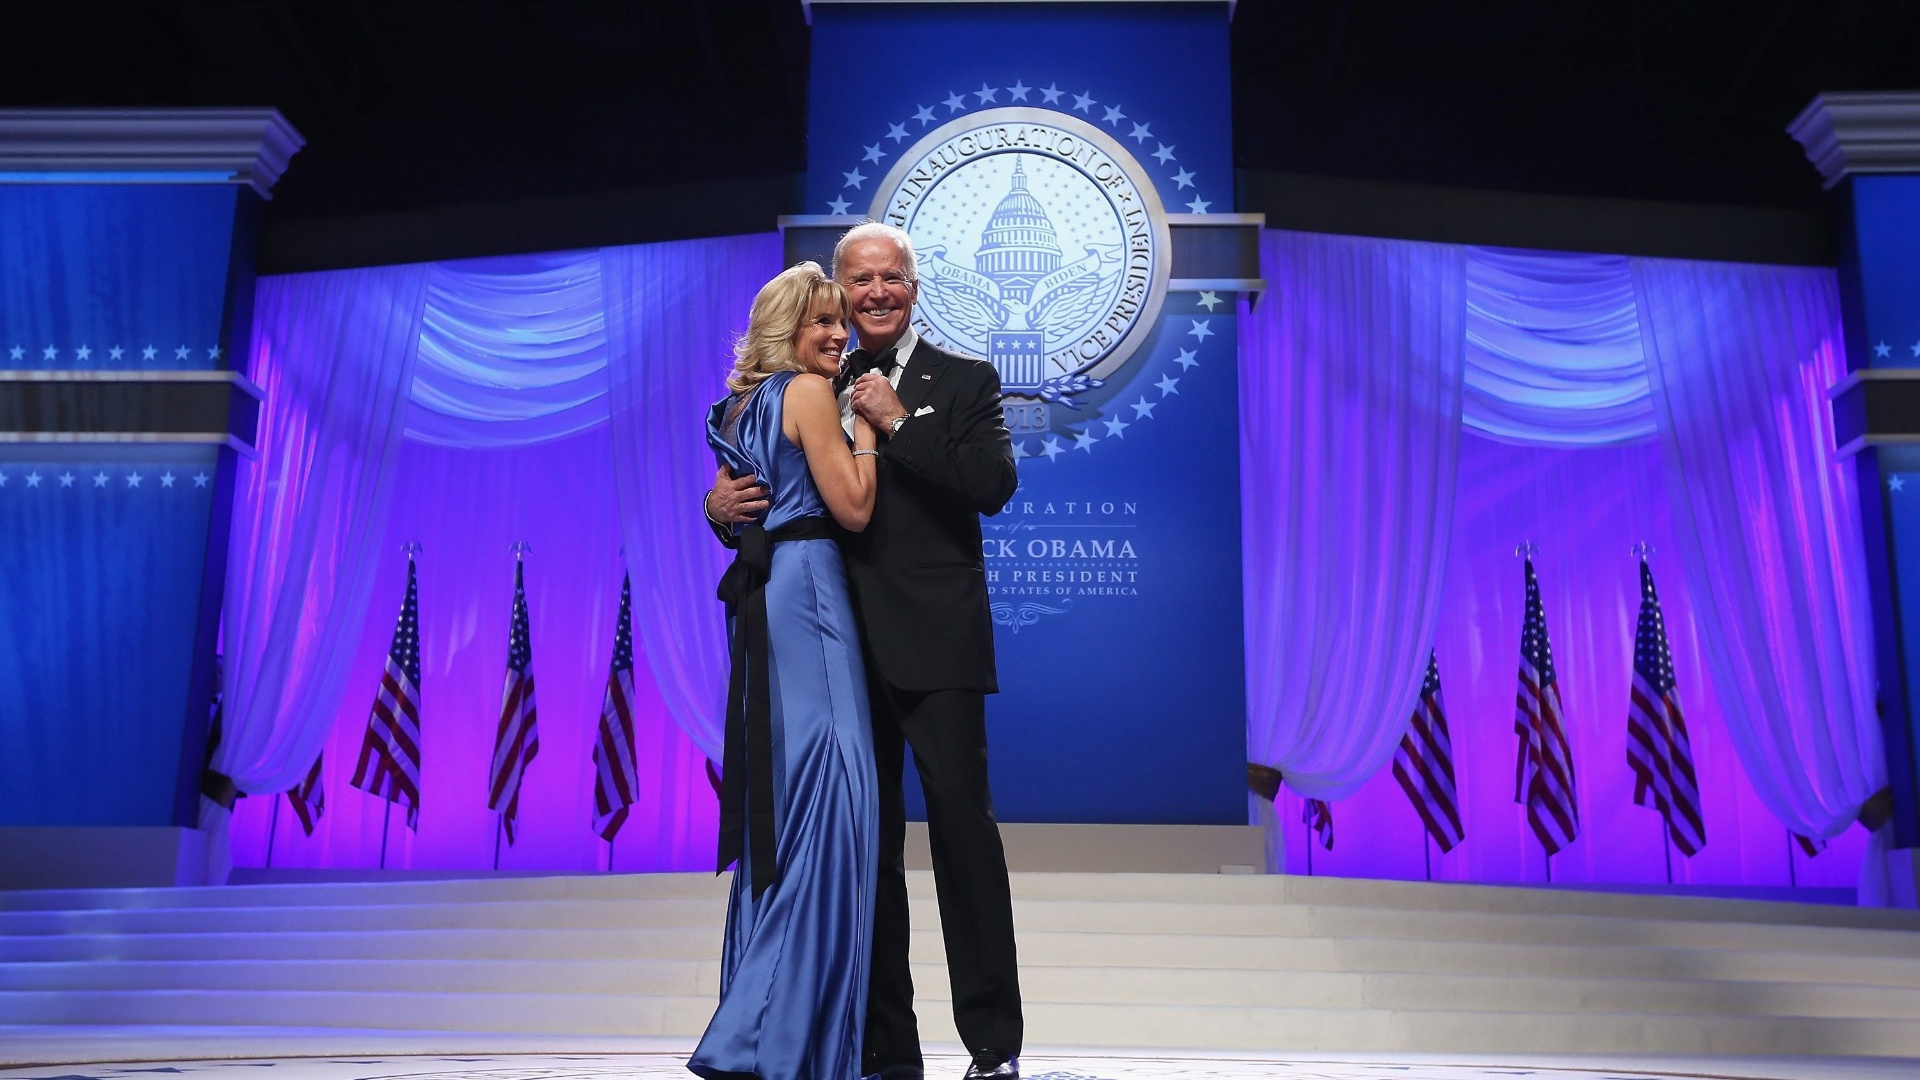 22.jan.2013 - O vice-presidente dos Estados Unidos, Joe Bidden, e a vice-primeira-dama, Jill Biden, dançam durante festa após cerimônia de posse do presidente Barack Obama, no Centro de Convenções Walter E. Washington, em Washington (EUA)